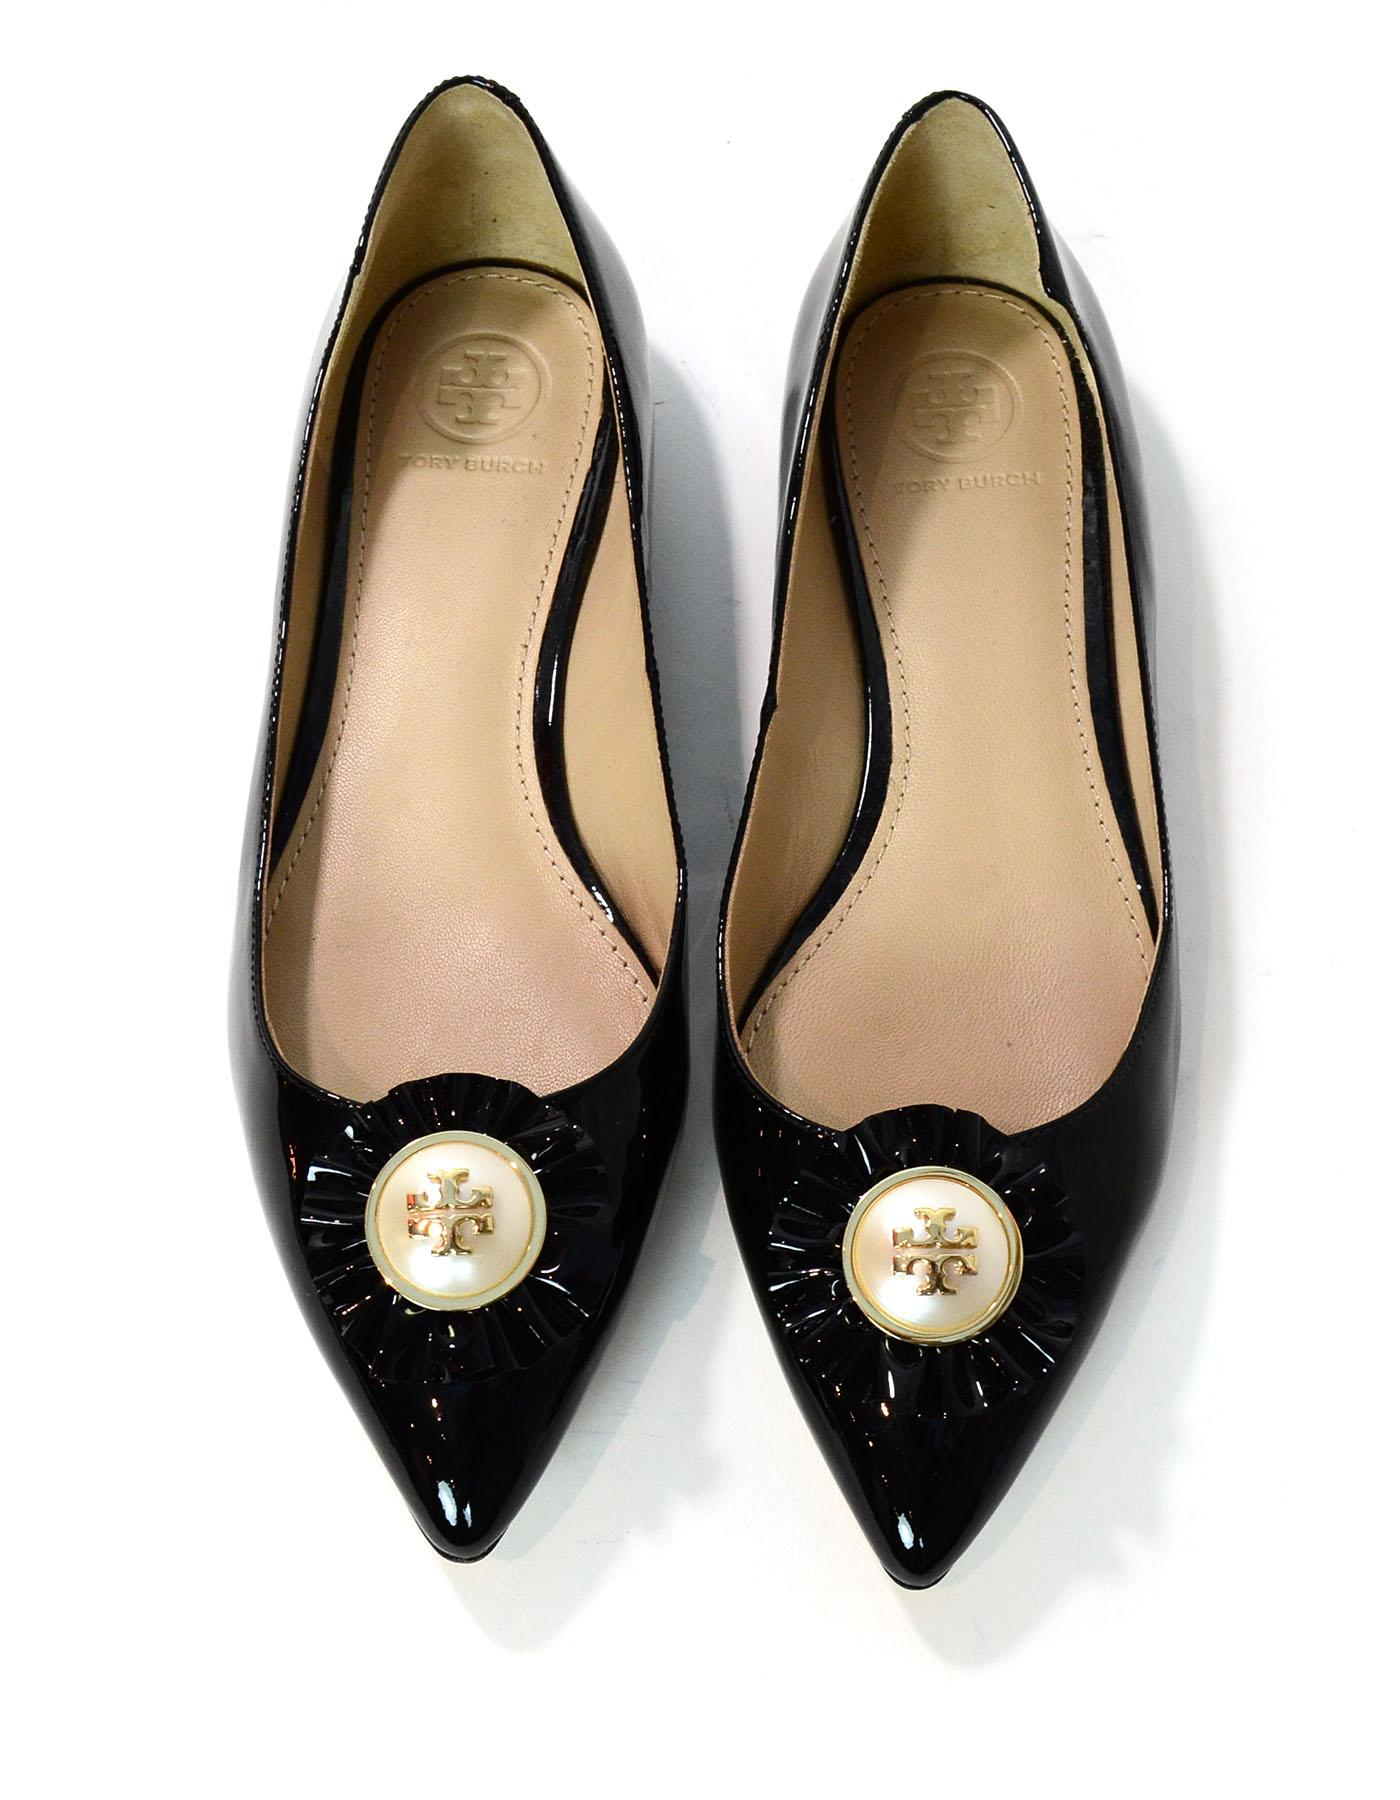 6d852eb38b15 Tory Burch Black Patent Leather Melody Pearl Flats Sz 7M NEW with DB For Sale  at 1stdibs